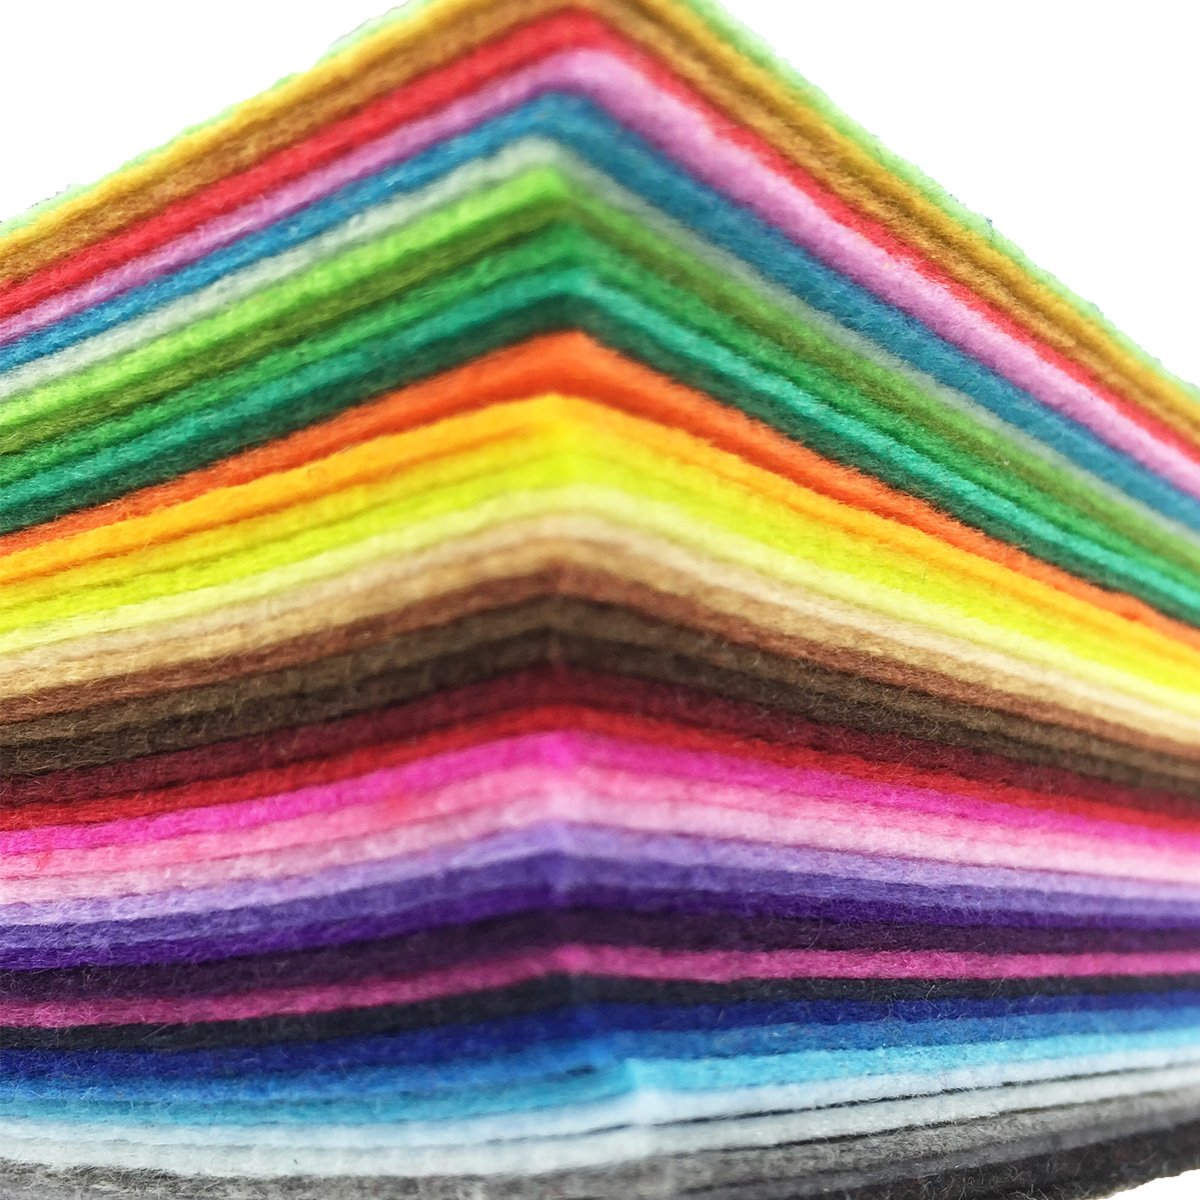 flic-flac 42pcs 12 x 12 inches (30cm30cm) Felt Fabric Sheet Assorted Color Felt Pack DIY Craft Squares Nonwoven by flic-flac (Image #2)